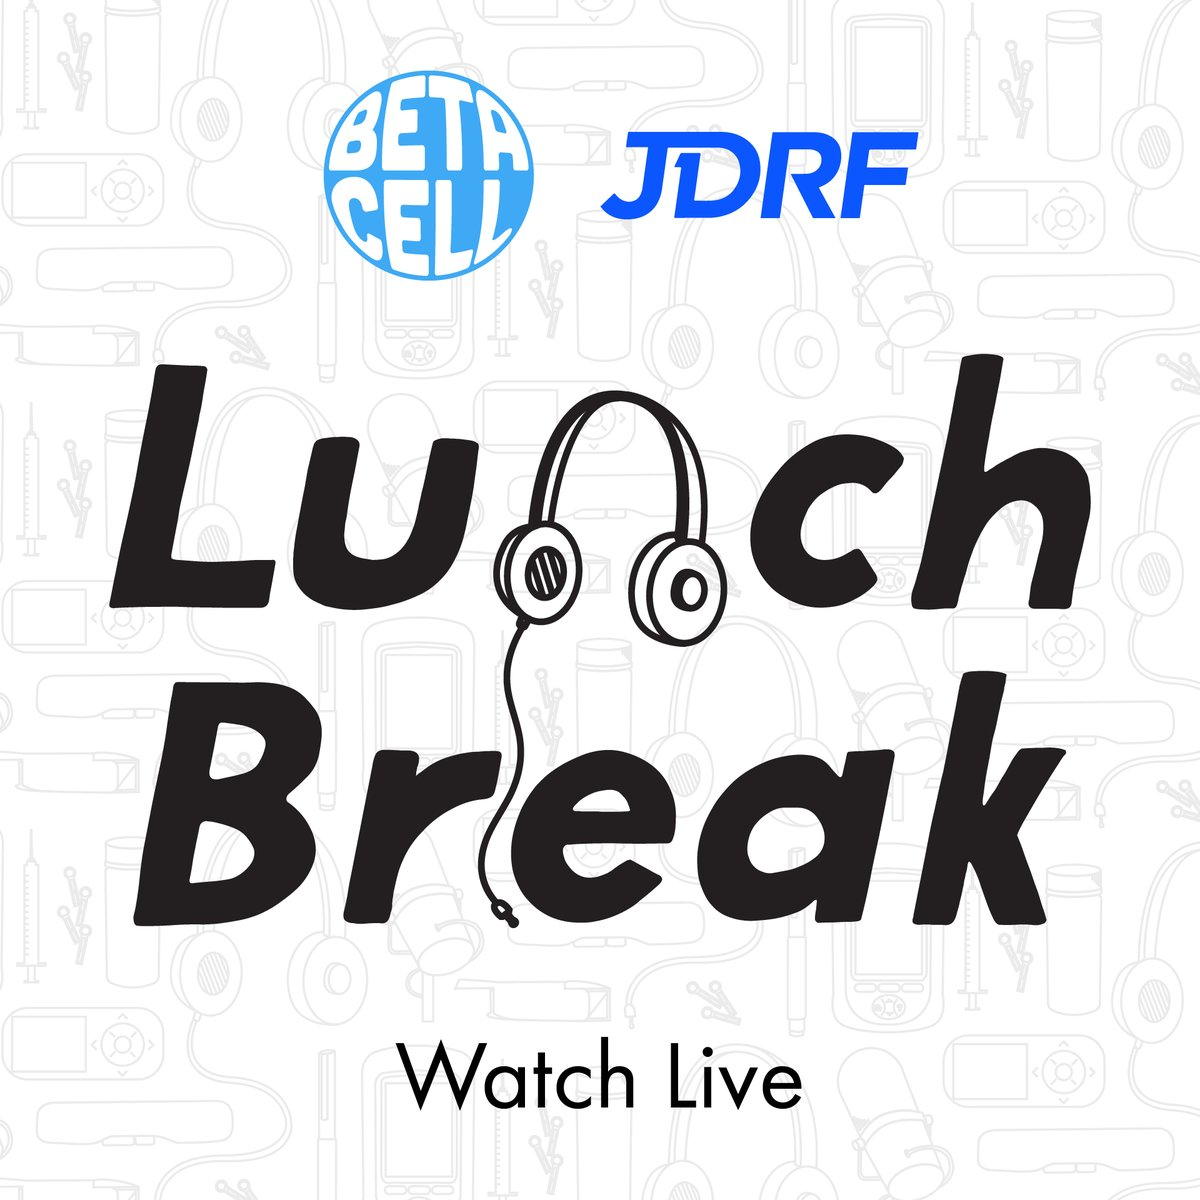 test Twitter Media - Join Beta Cell and @JDRF for 30-minute live video conversations on how people with T1D are coping with being stuck at home.  Airing LIVE on Facebook and Twitch next week (4/13-4/17) at noon PDT.  #diabetes #diabetic #t1d #type1 #type1diabetes https://t.co/tWG7NeQPsl